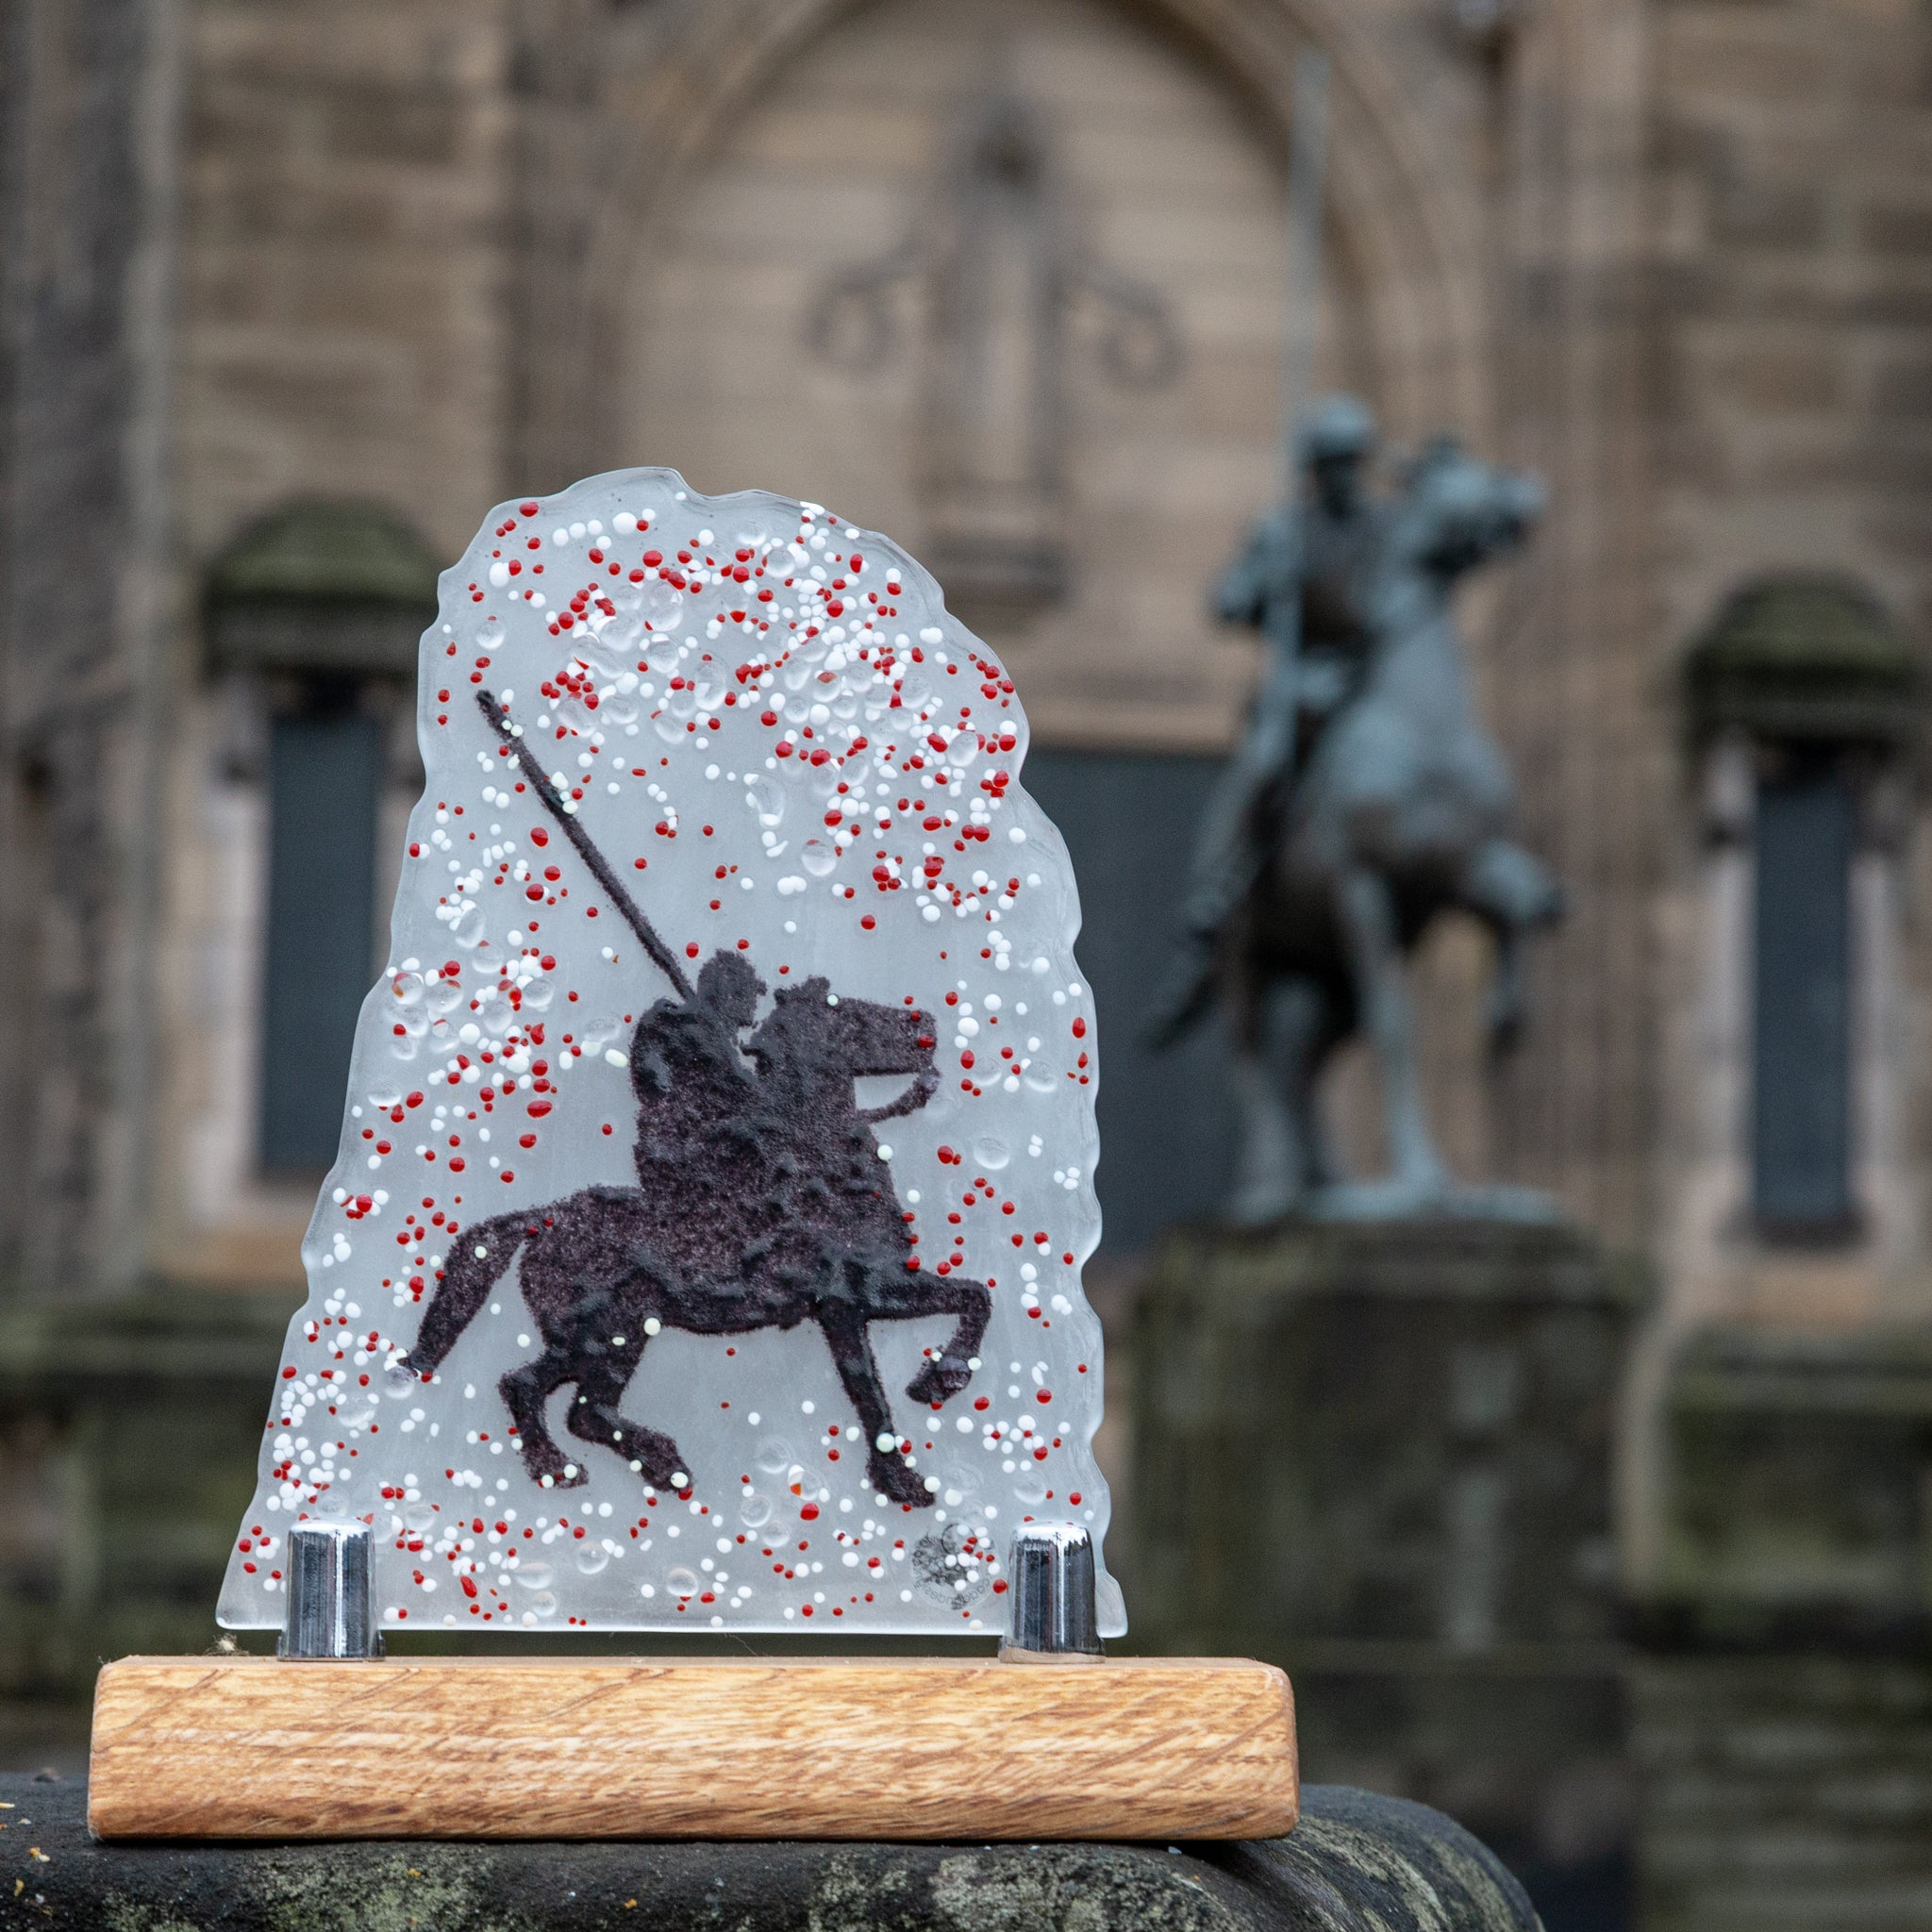 BORDER REIVER - GLASS SCULPTURE